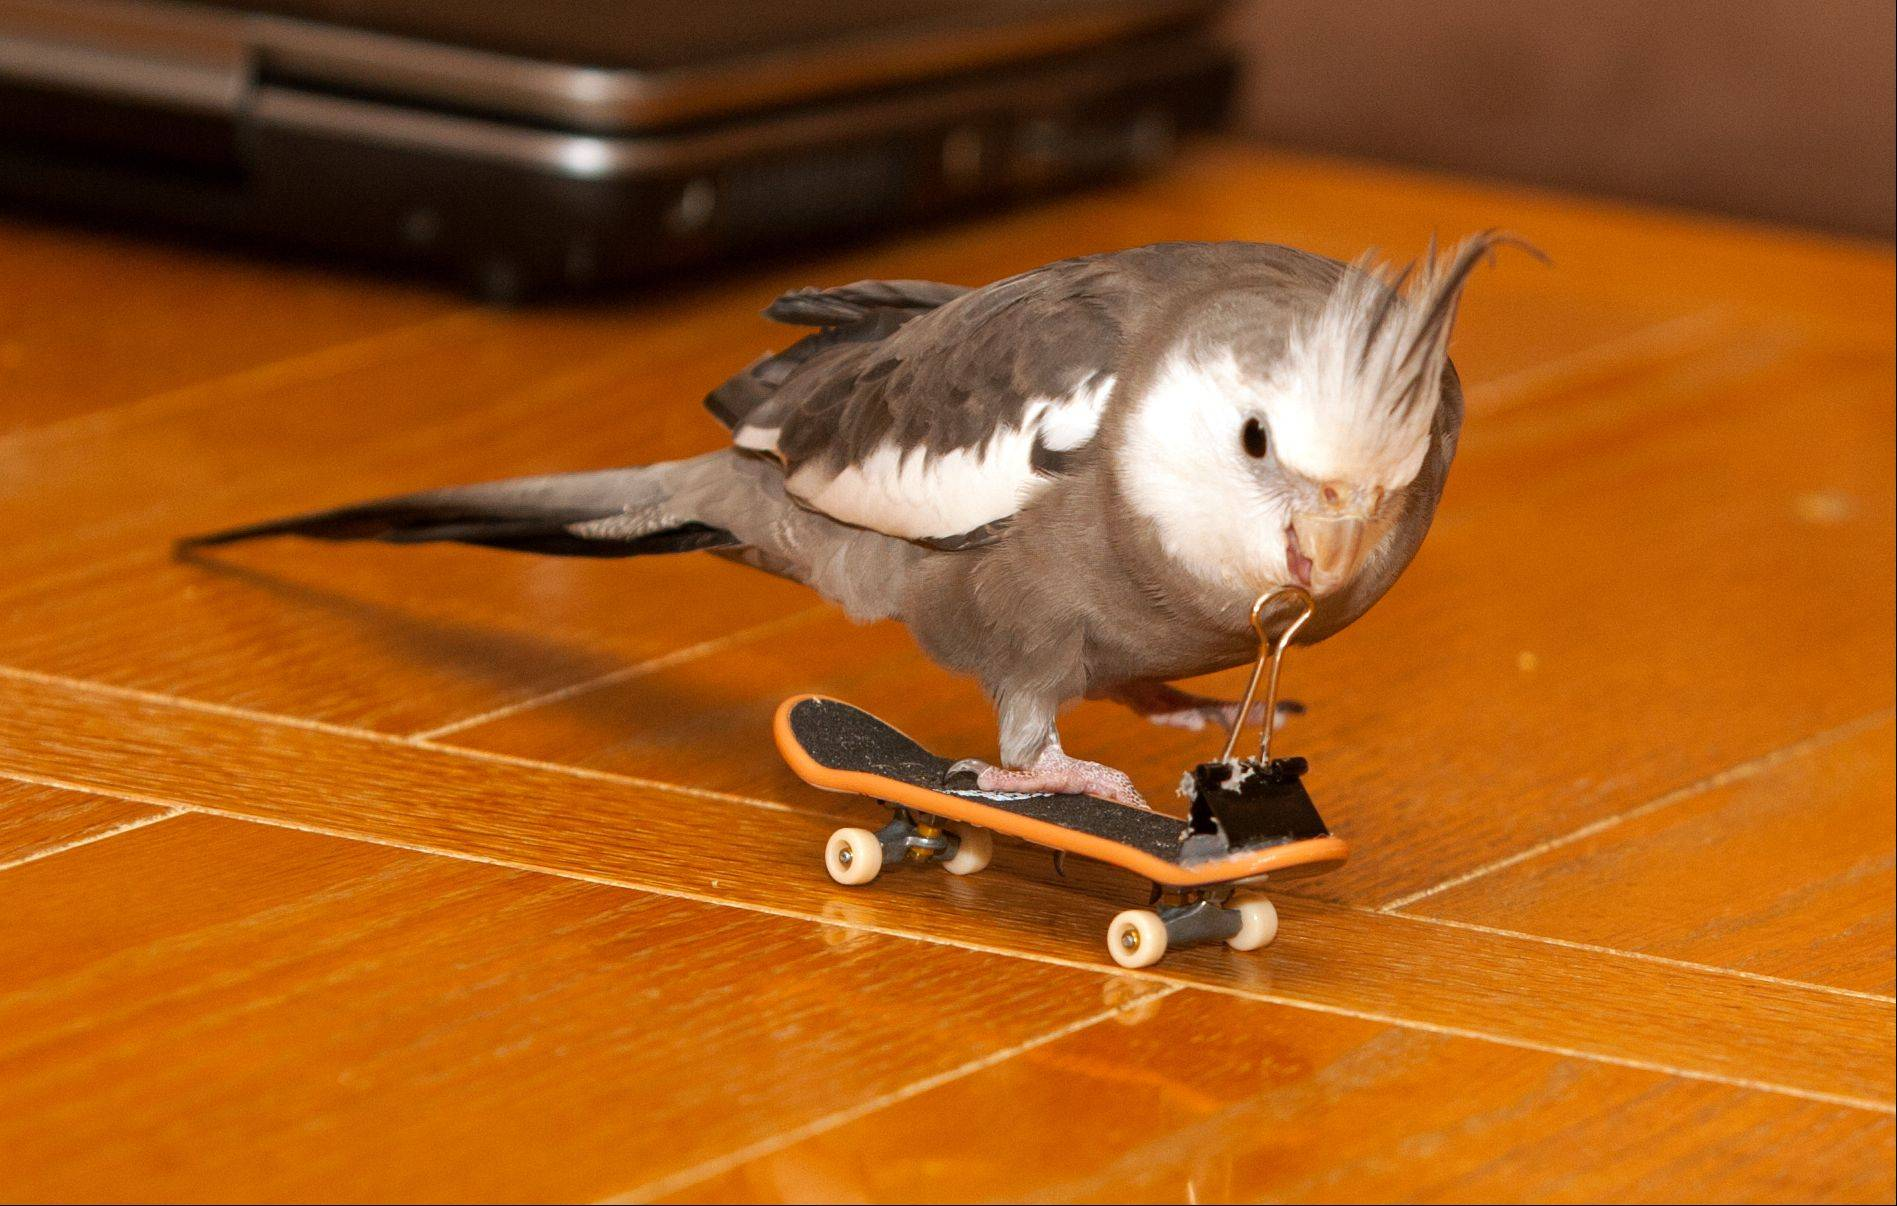 Frank and Kim Alonso's pet cockatiel Tango skateboards around their Lombard home Friday. Tango is back at home after a three-day adventure that involved being chased by a hawk and cared for by a guest at Lombard's Westin hotel.